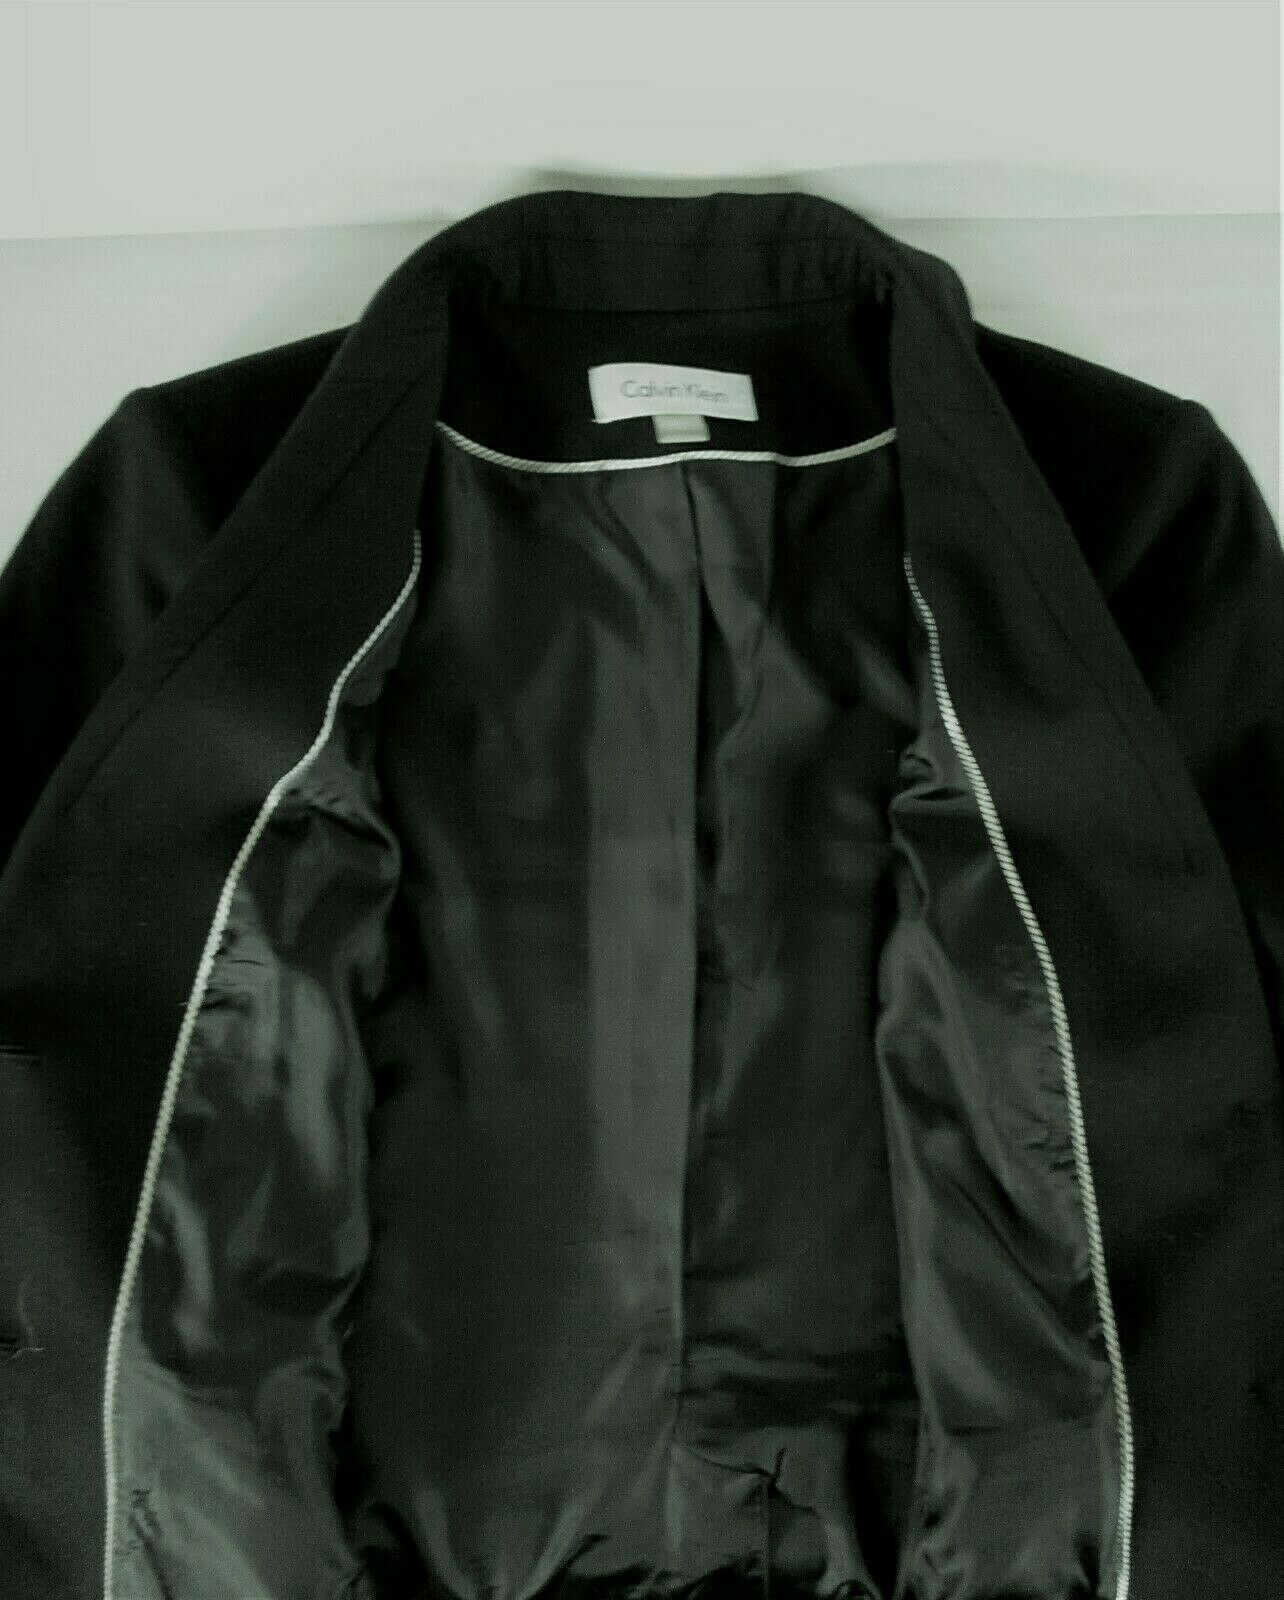 CALVIN KLEIN womens Sz 10 L/S black 2 button FULLY LINED jacket (B4)